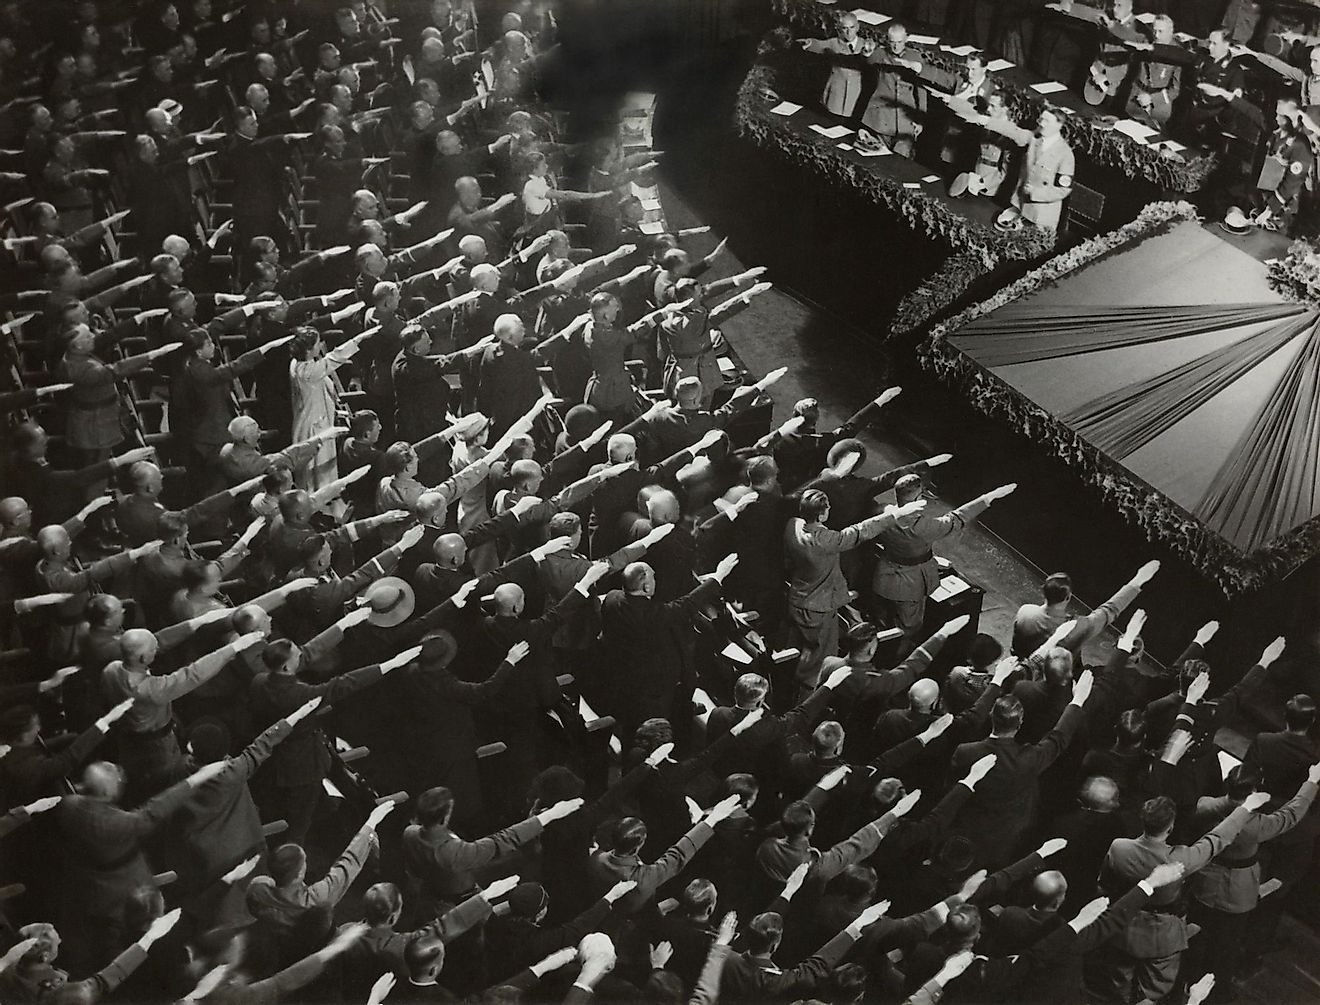 Attendees give Hitler the Nazi salute during the nation anthem, Oct. 9, 1935. They were meeting at the Kroll Opera in Berlin. Editorial credit: Everett Collection / Shutterstock.com